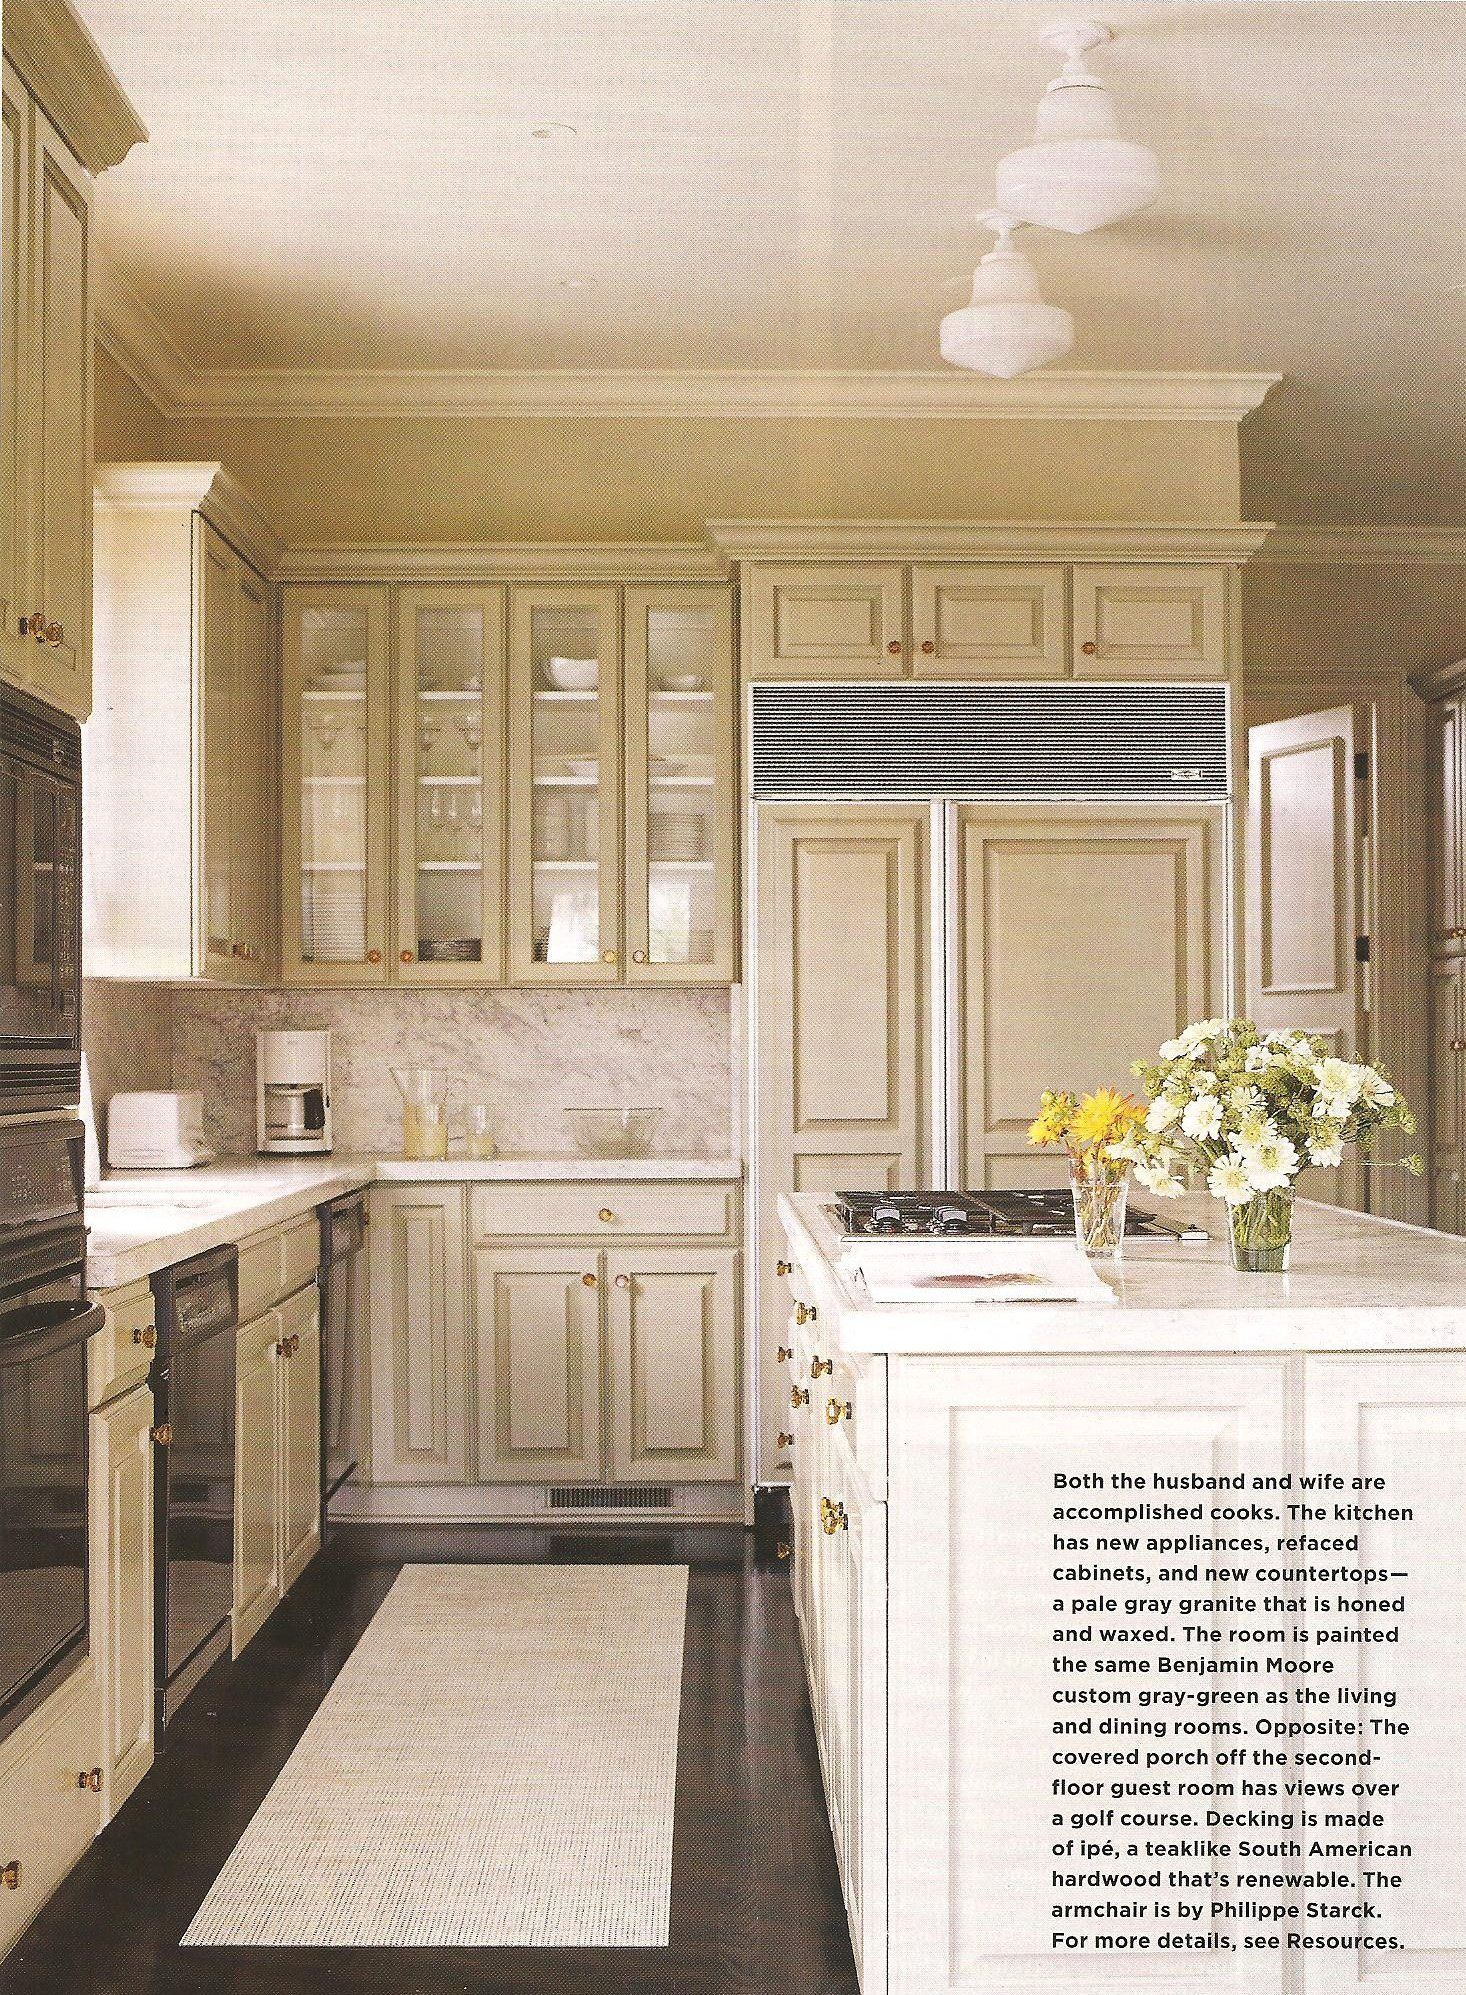 Pin by Laura Richie Smith on Kitchens | Home kitchens